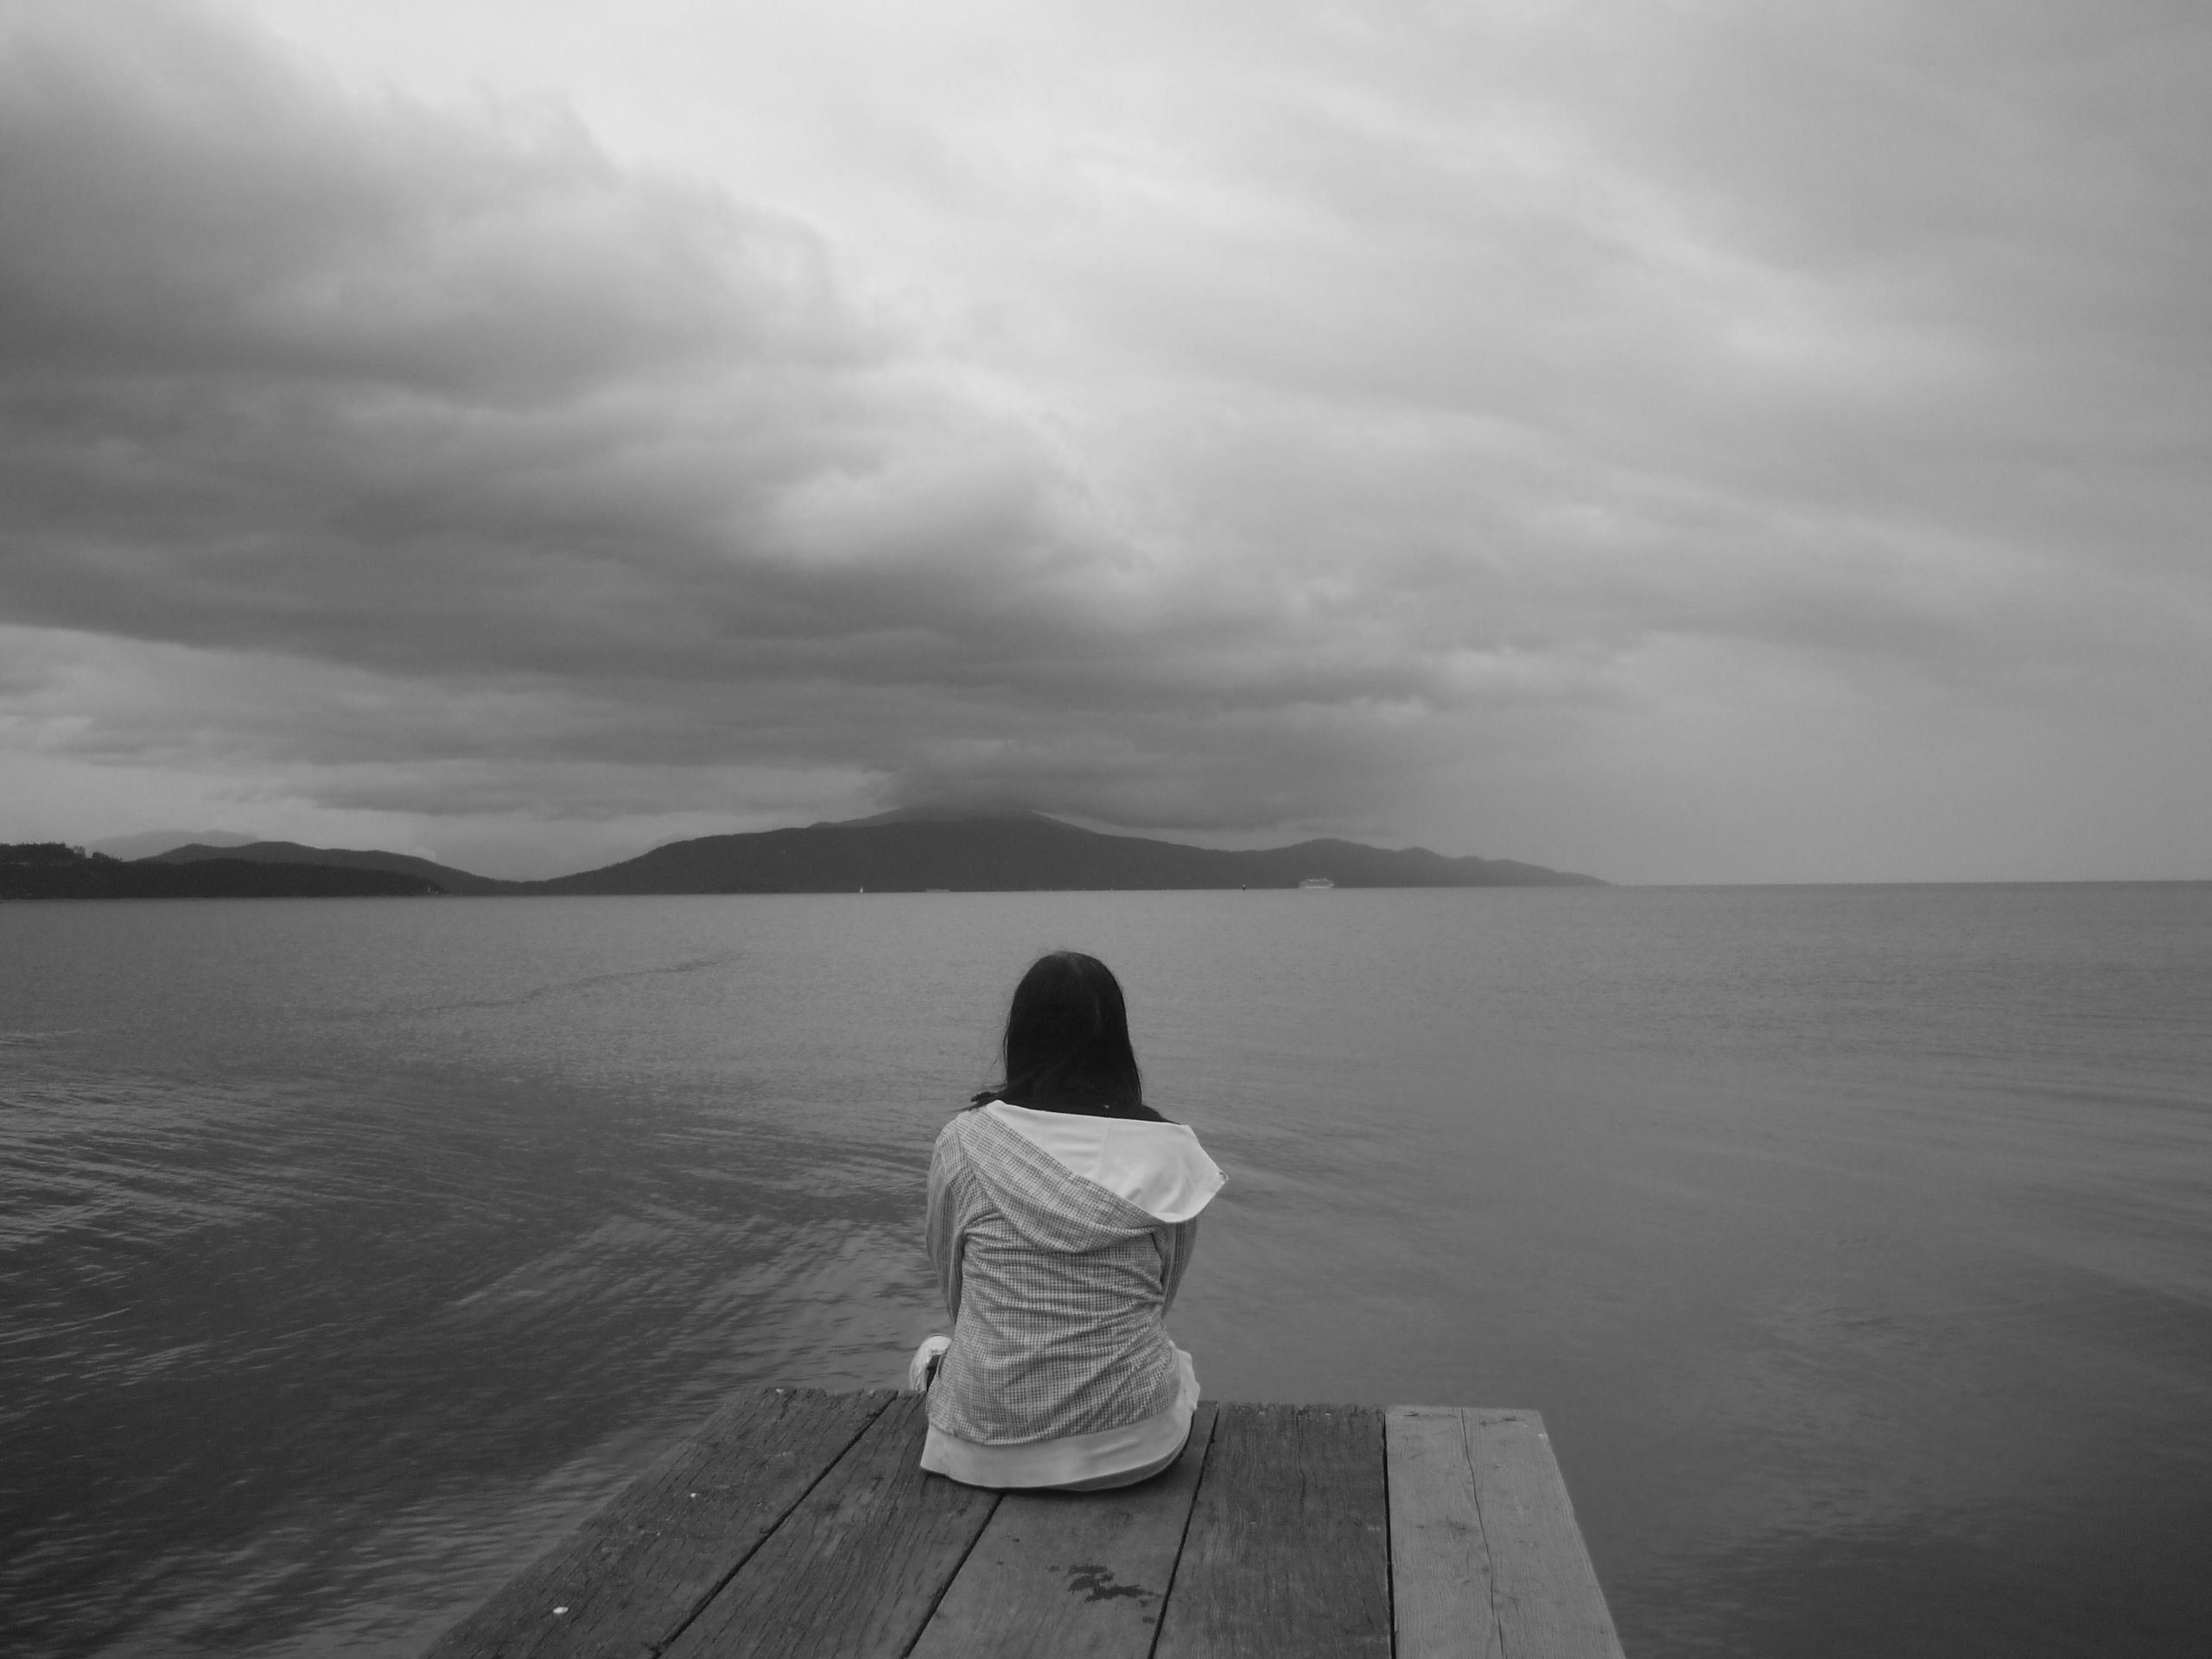 Depression sad mood sorrow dark people wallpaper ...